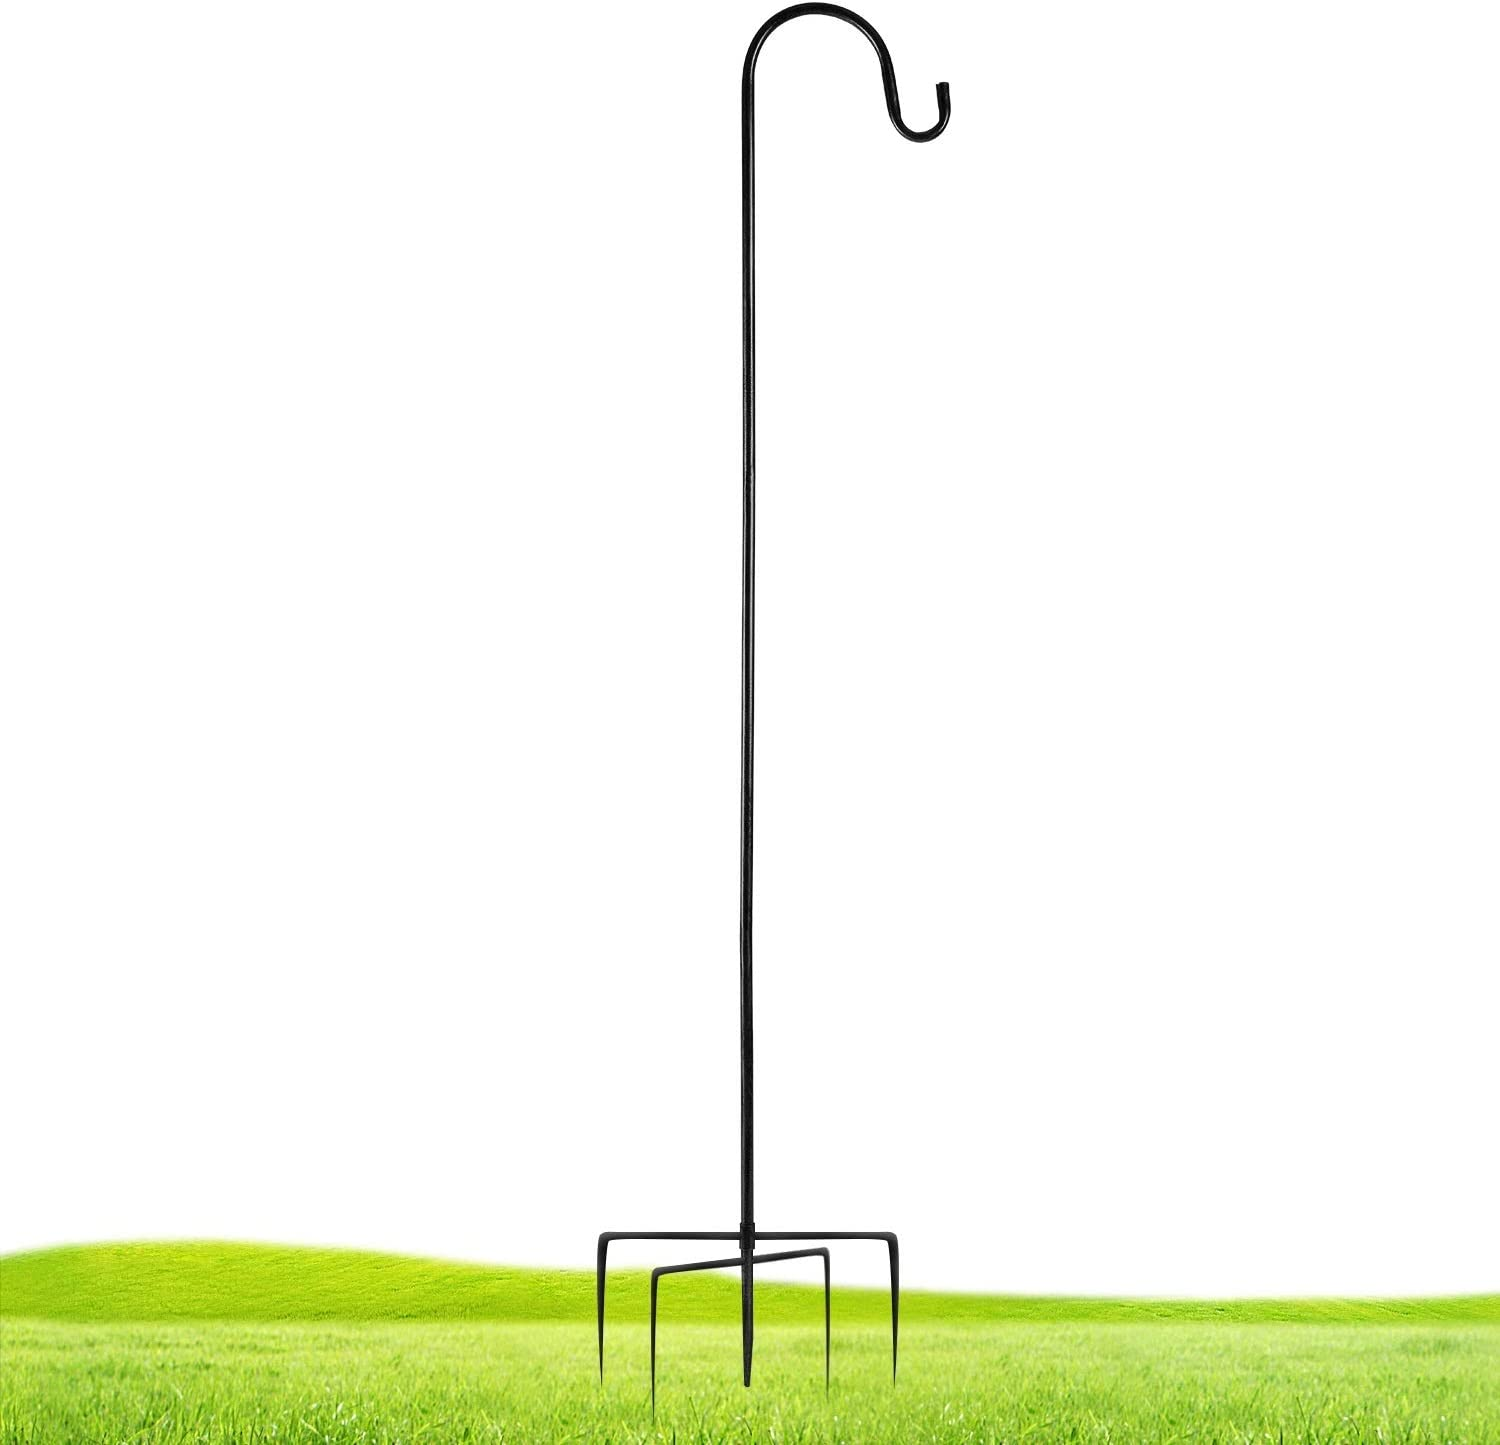 ExcMark Shepherd Hook 42.5 inch extendable Outdoor use for Hanging Bird feeders/Solar Lights/Mason Jars/Flower Baskets, Shepards Hooks for Outdoor Bird Feeder Pole. (Black, 1 Pack)